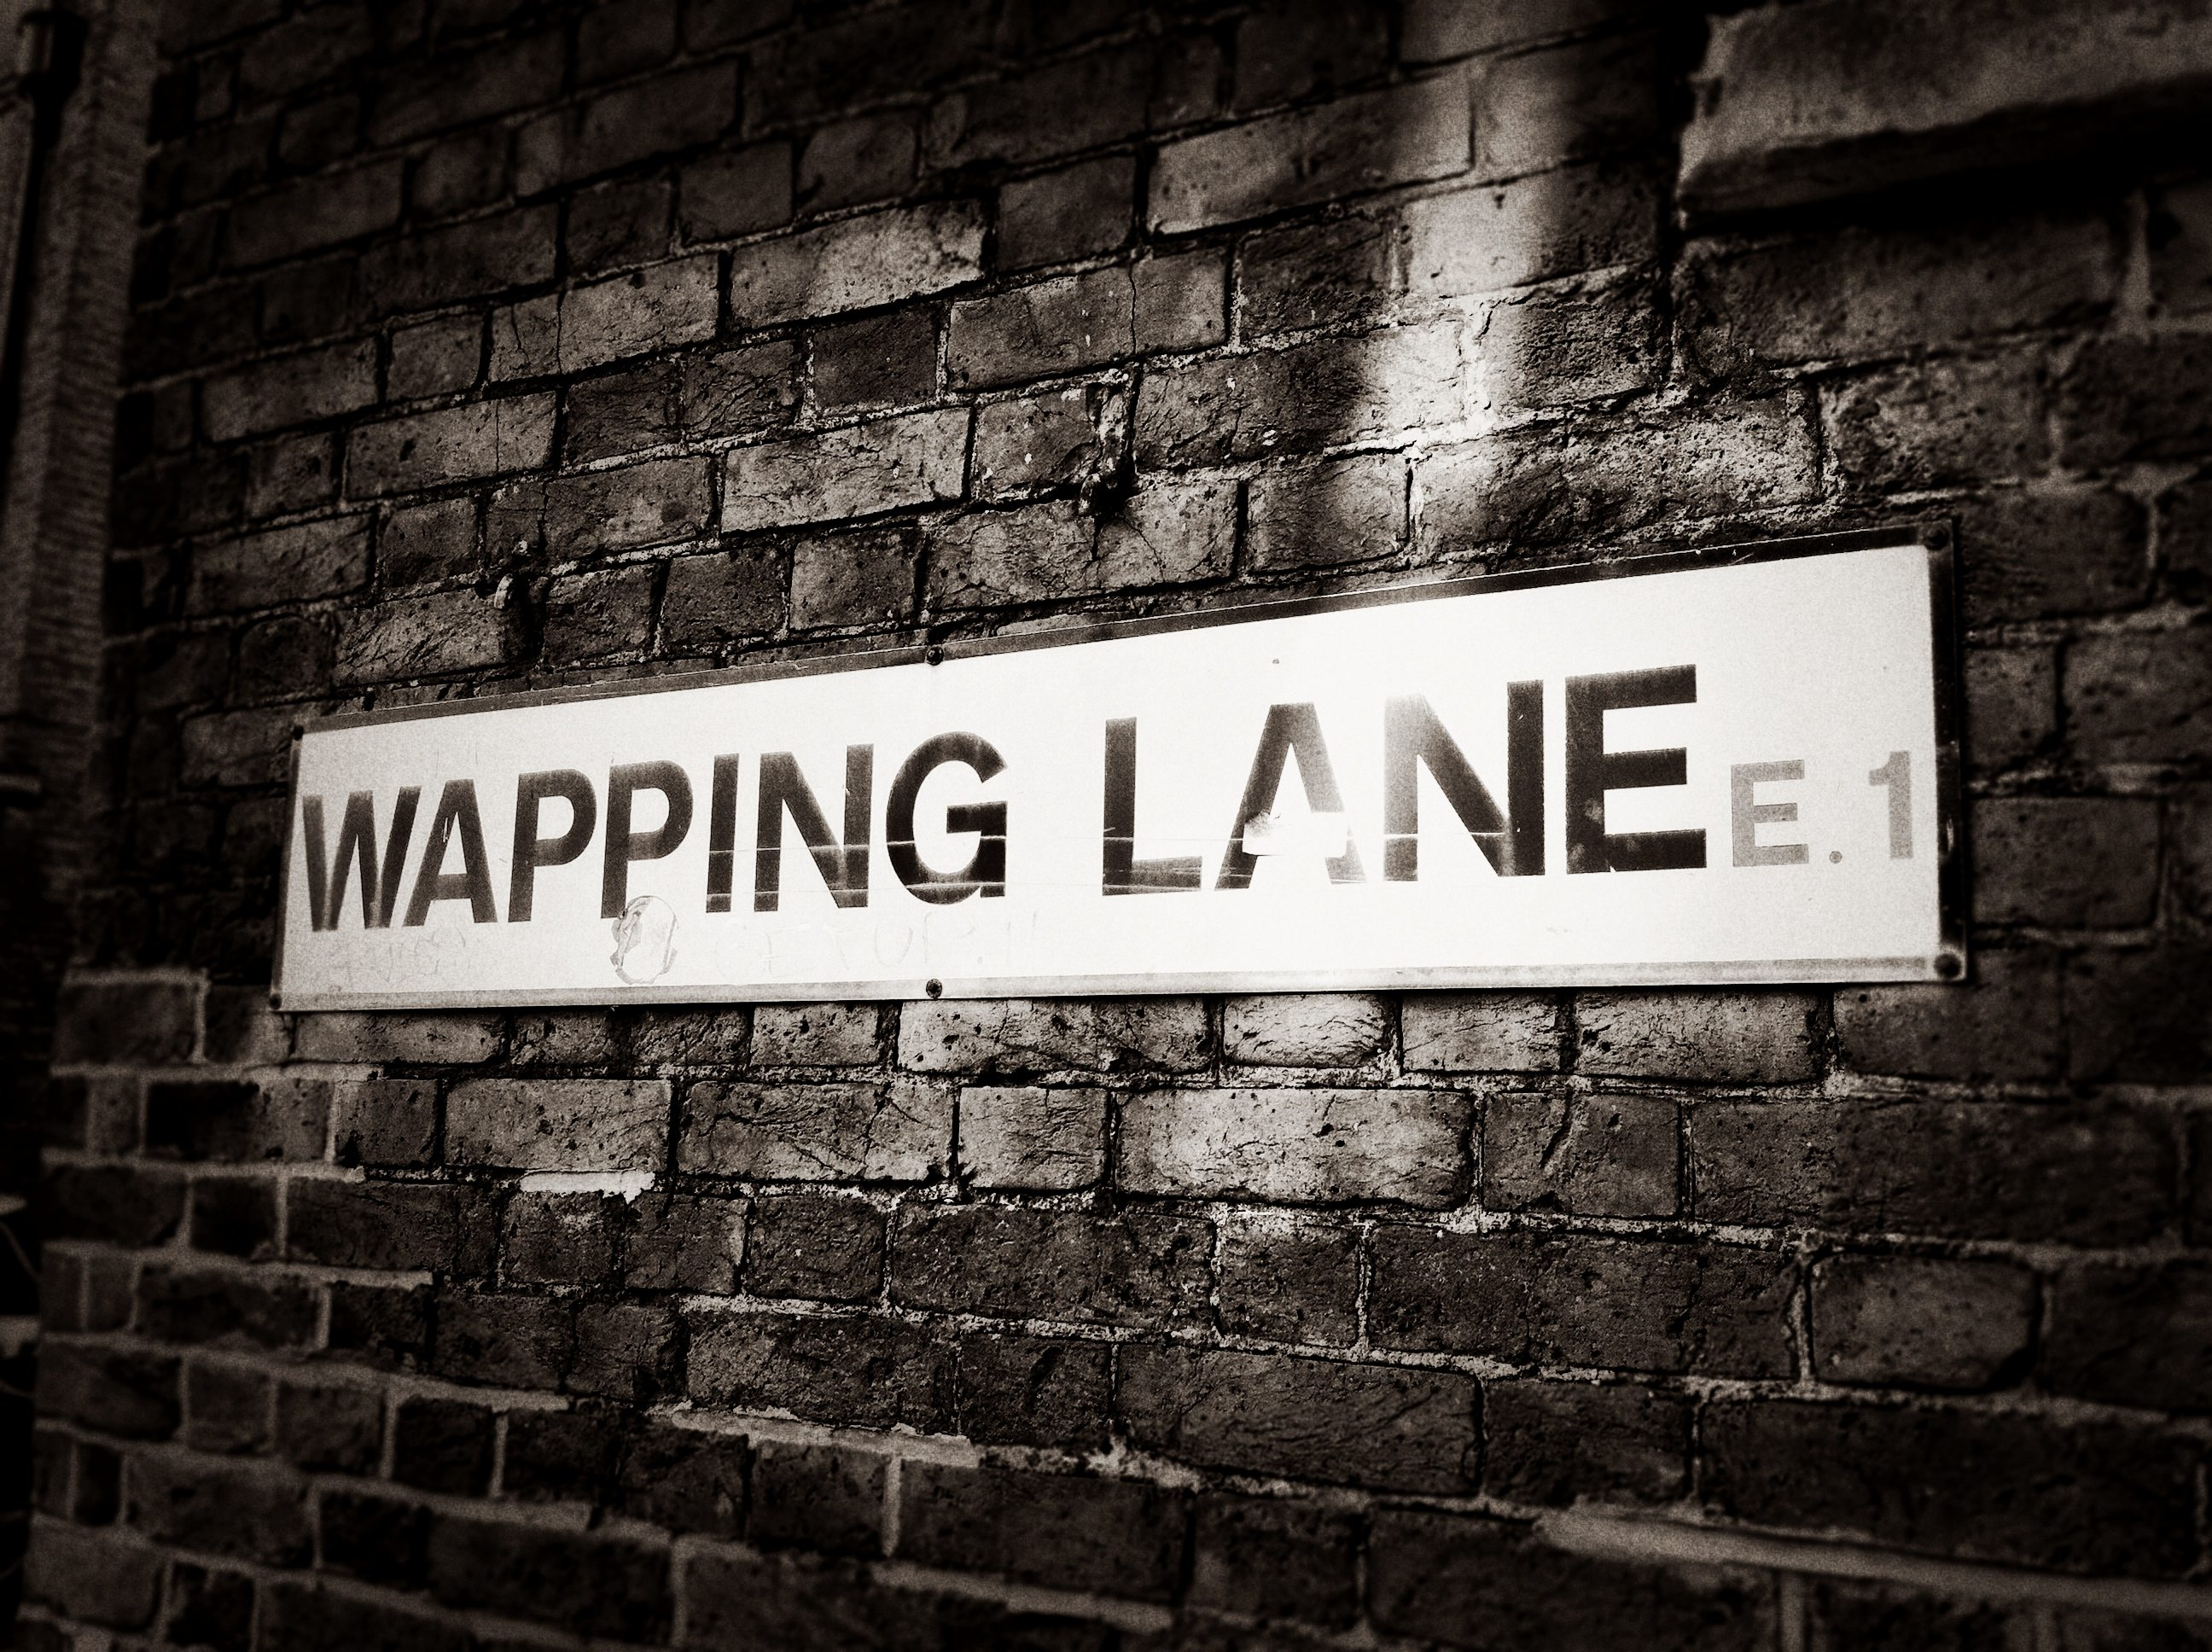 Wapping Lane